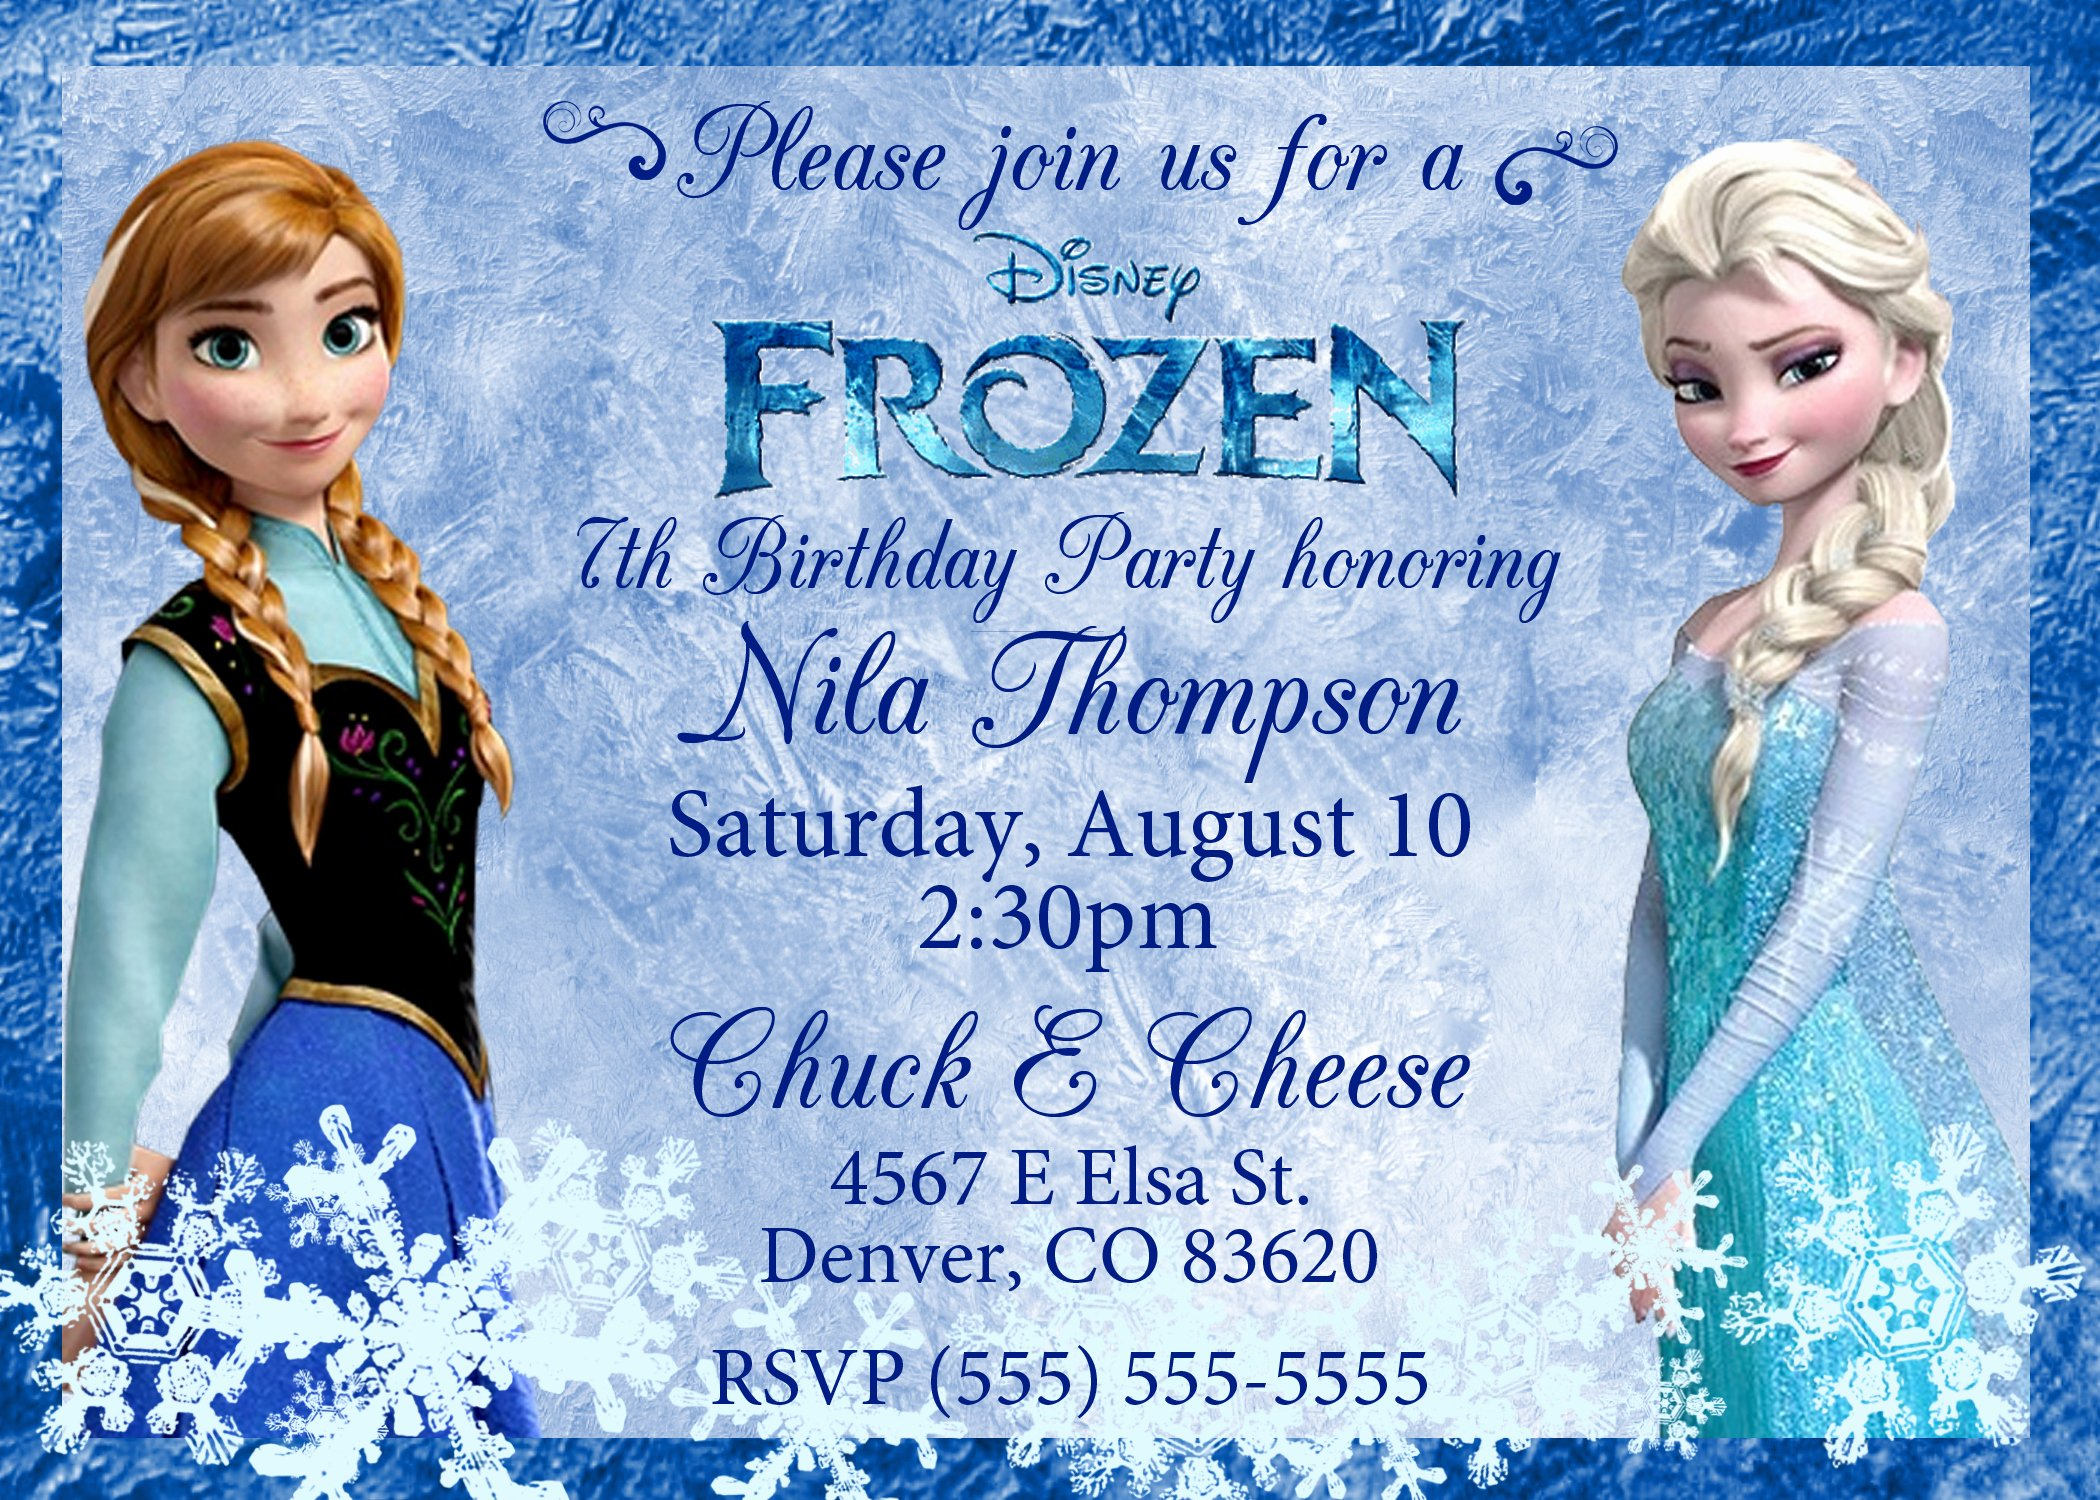 Frozen Party Invitation Template Elegant 40th Birthday Ideas Frozen Birthday Invitation Template Free